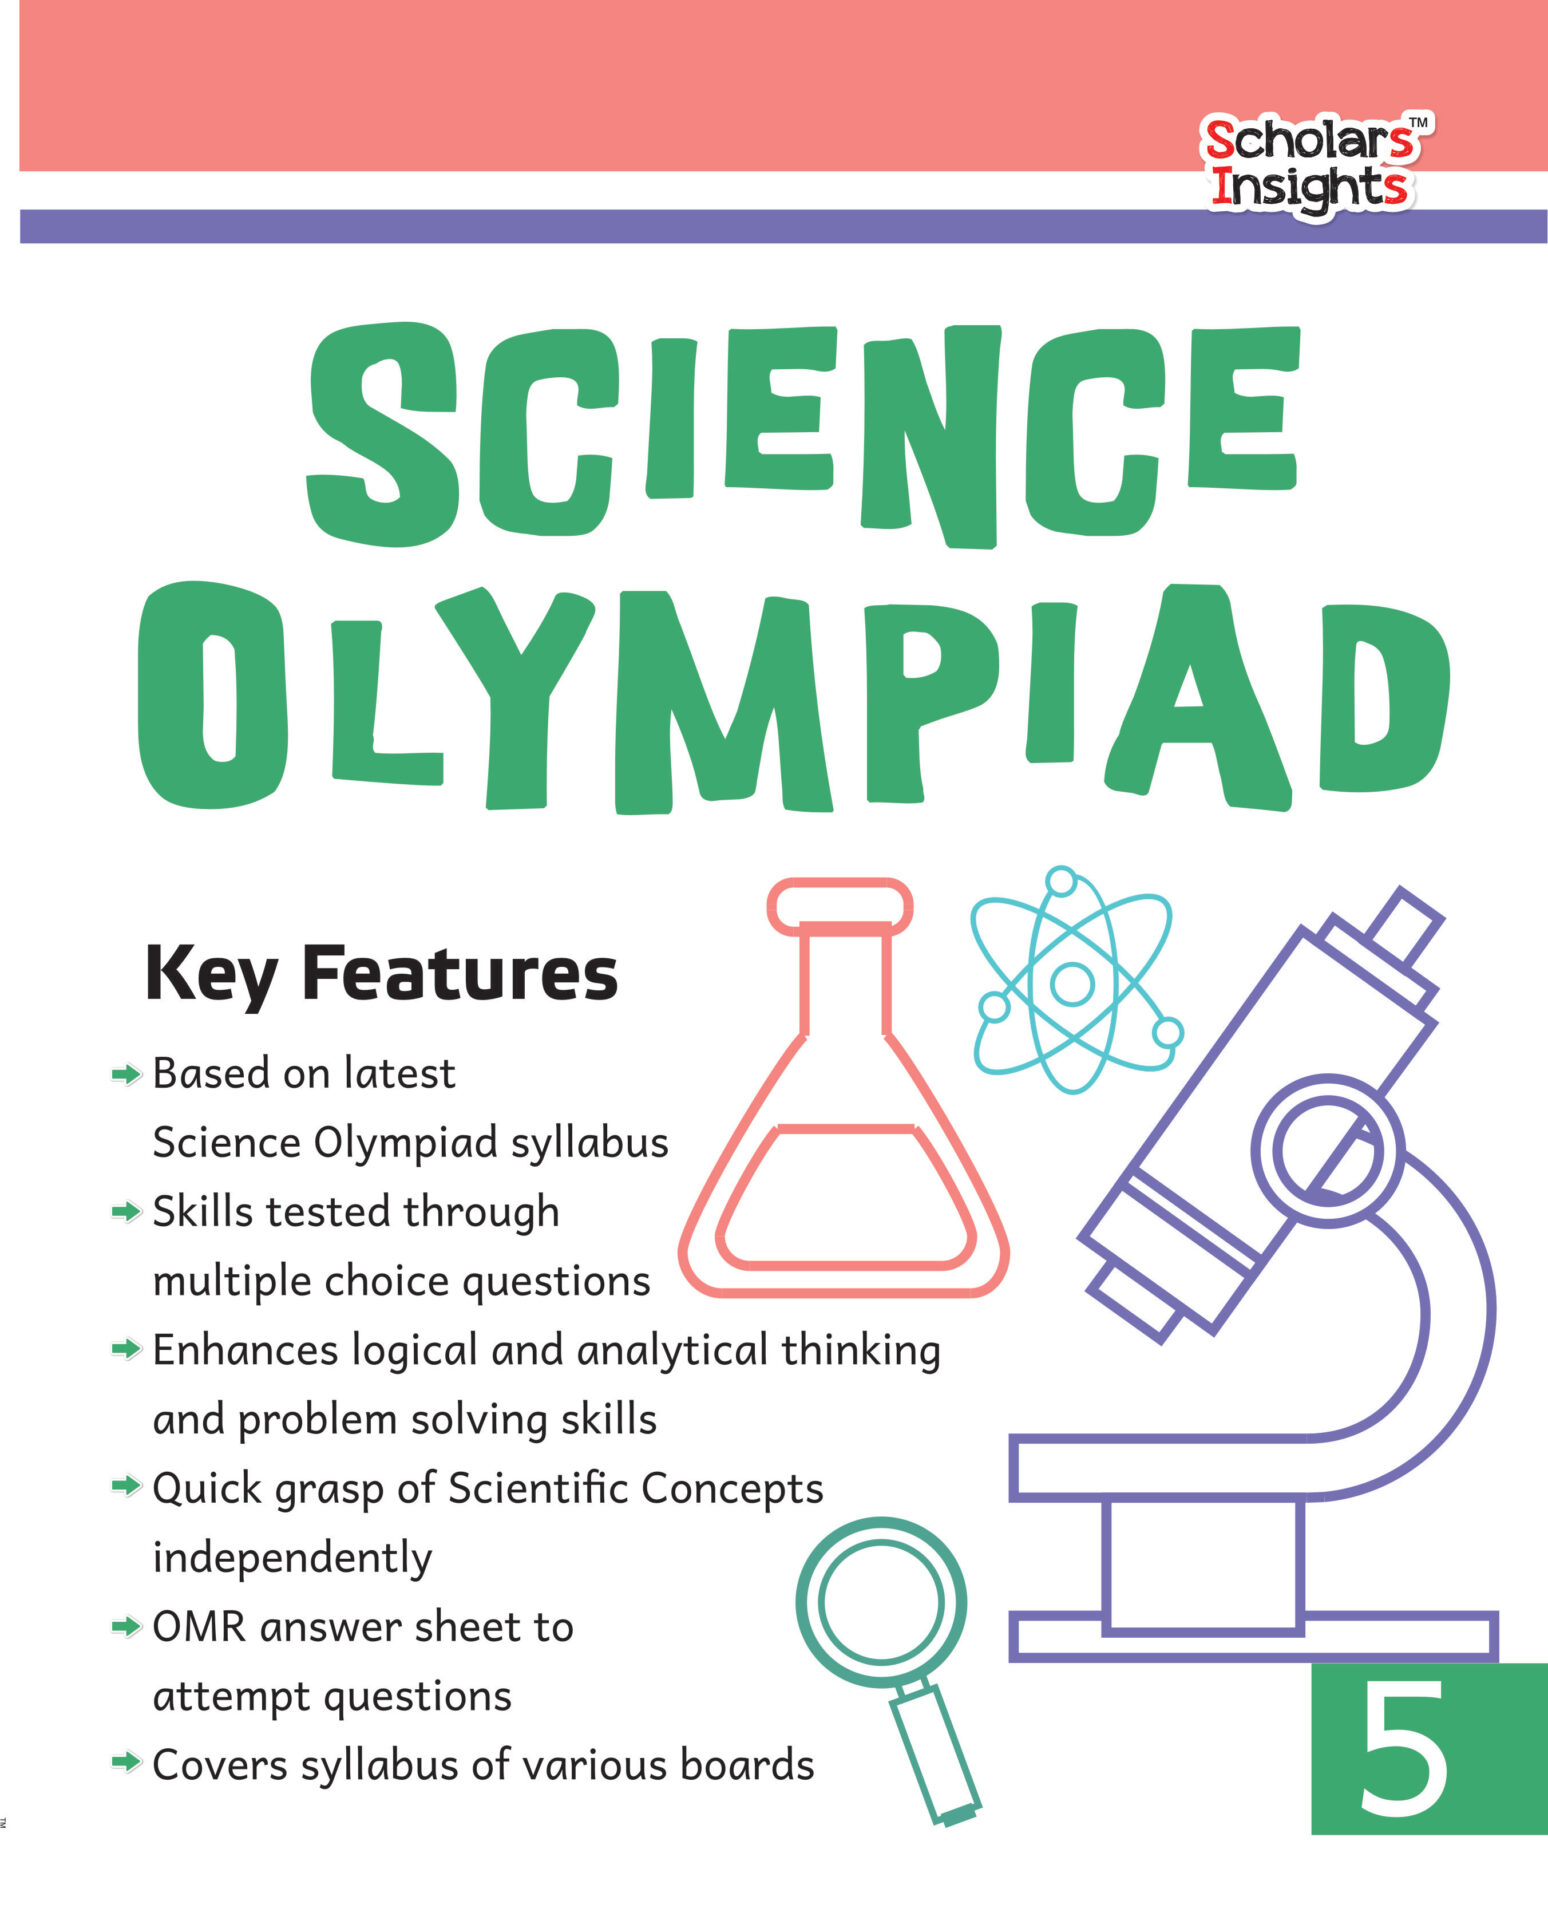 Scholars Insights Science Olympiad Class 5 1 1